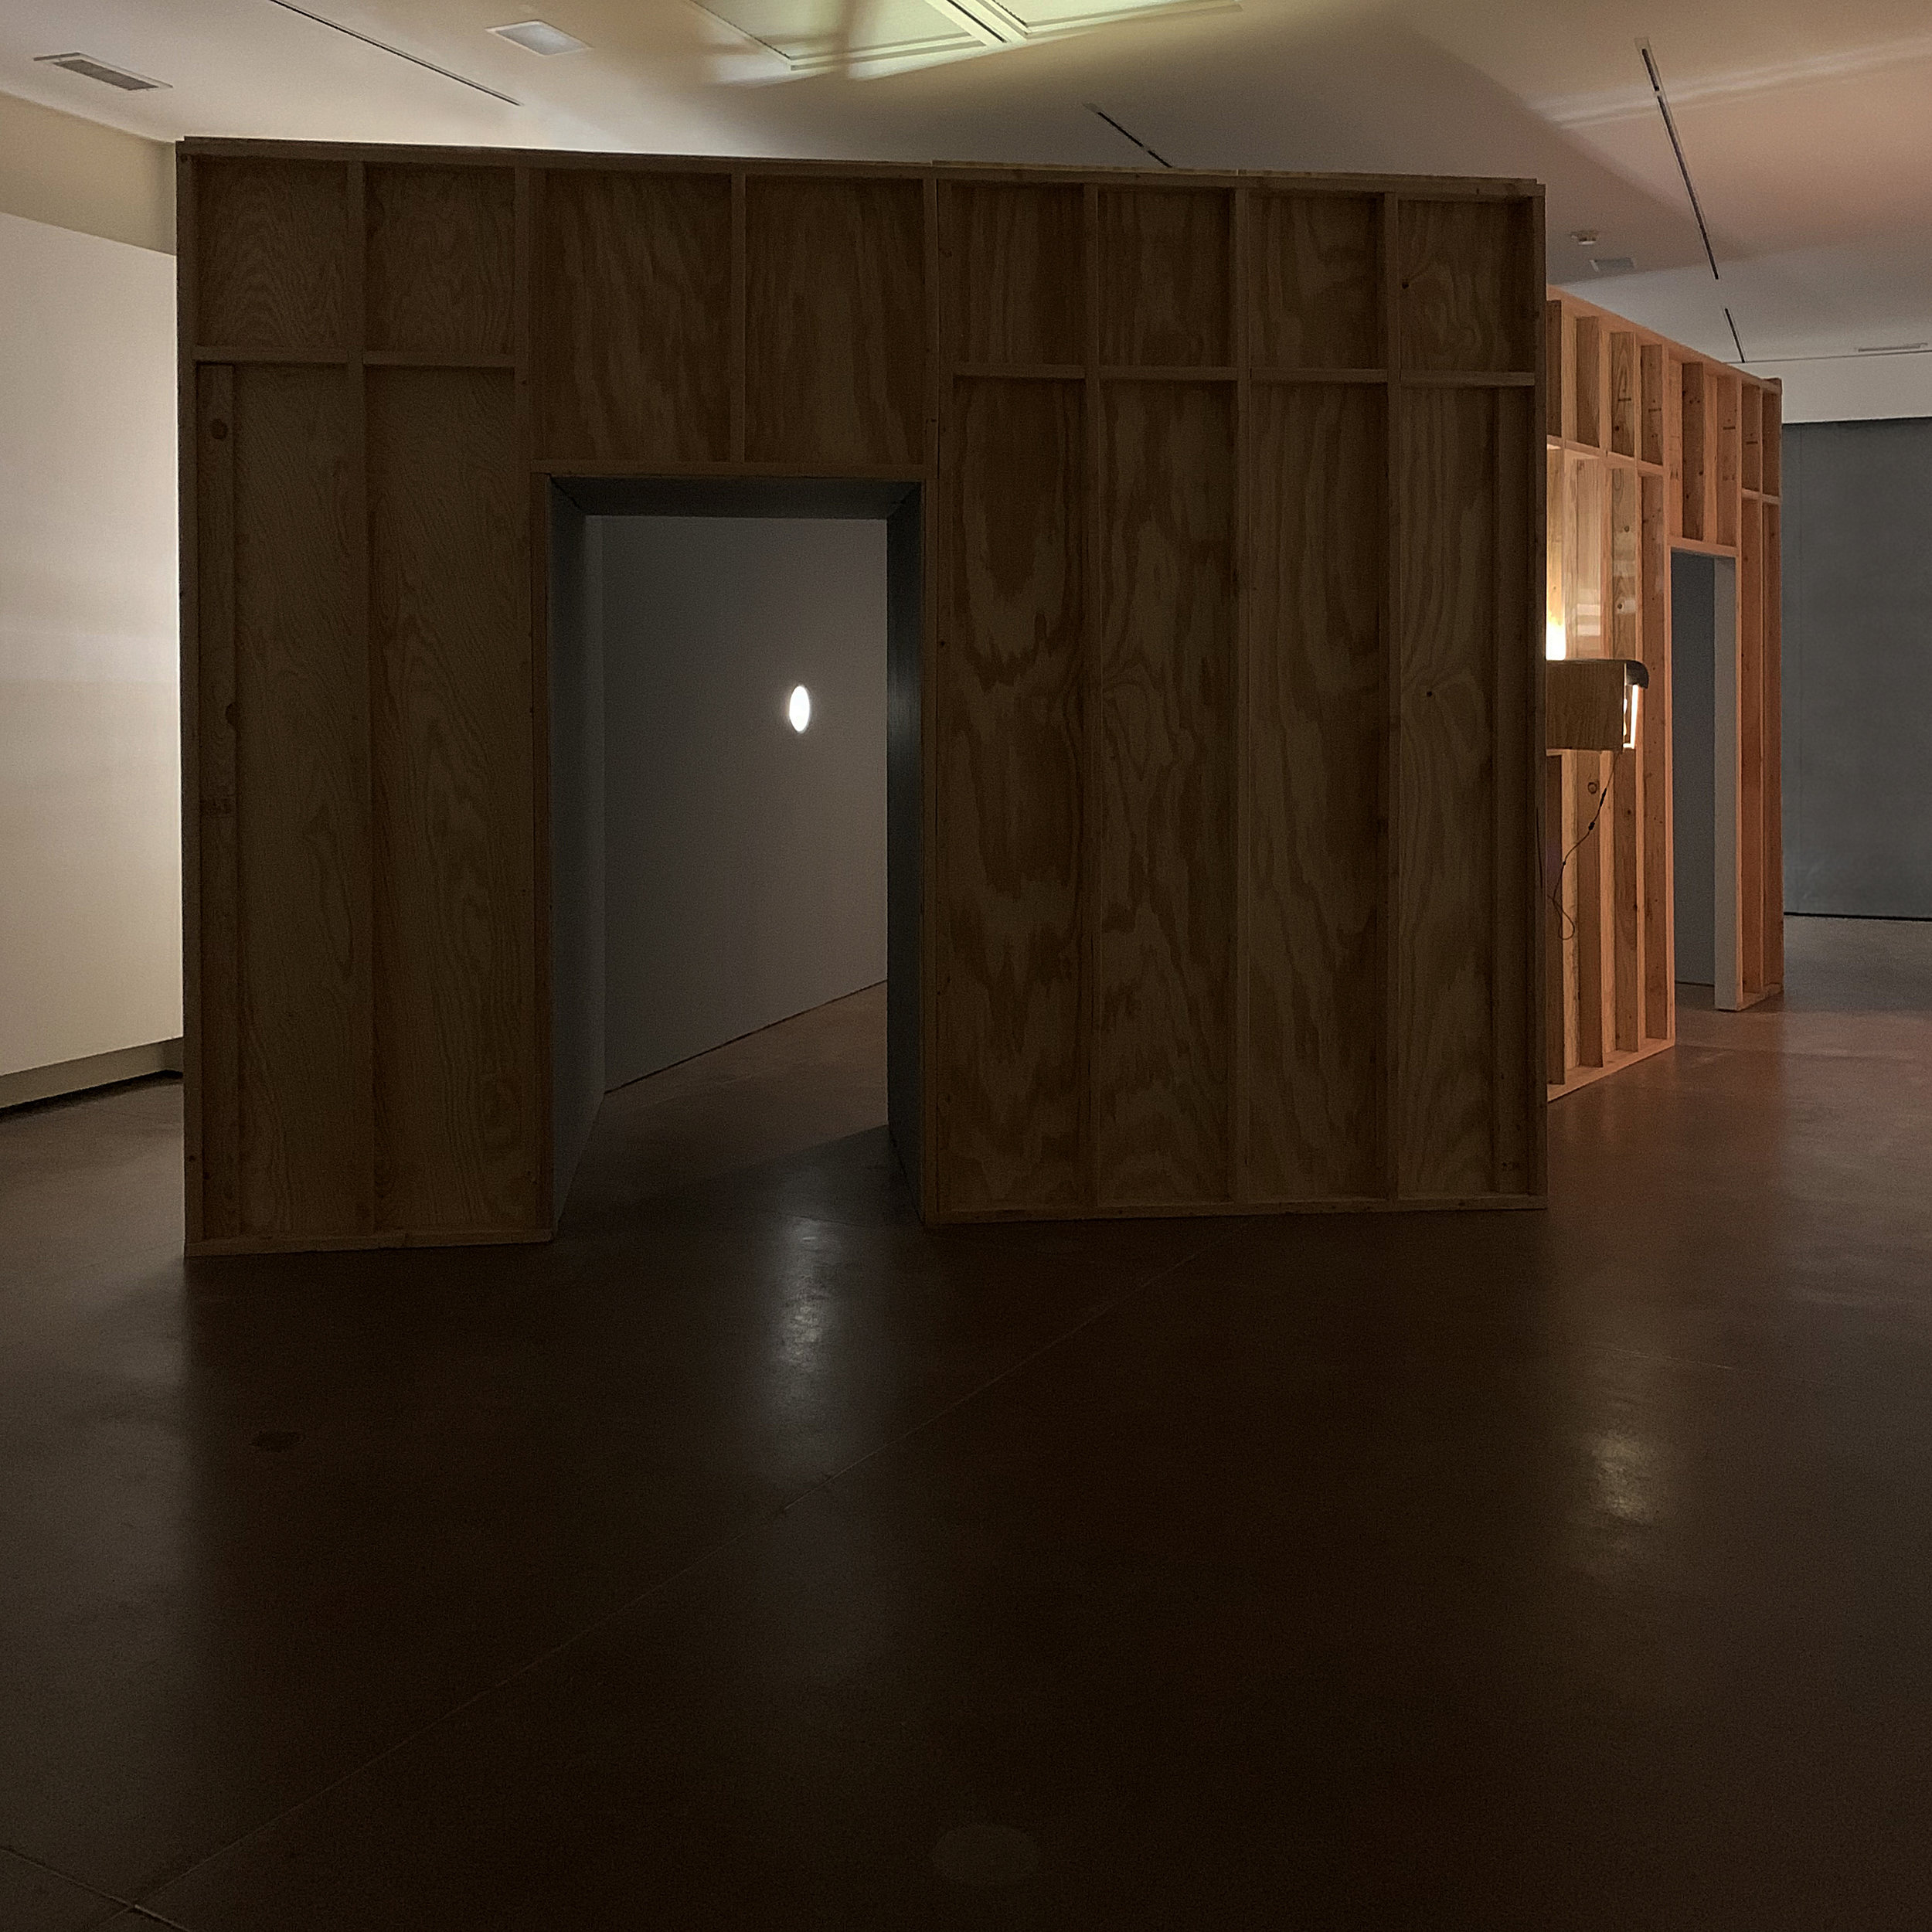 Installation View: Room of Nocturnes